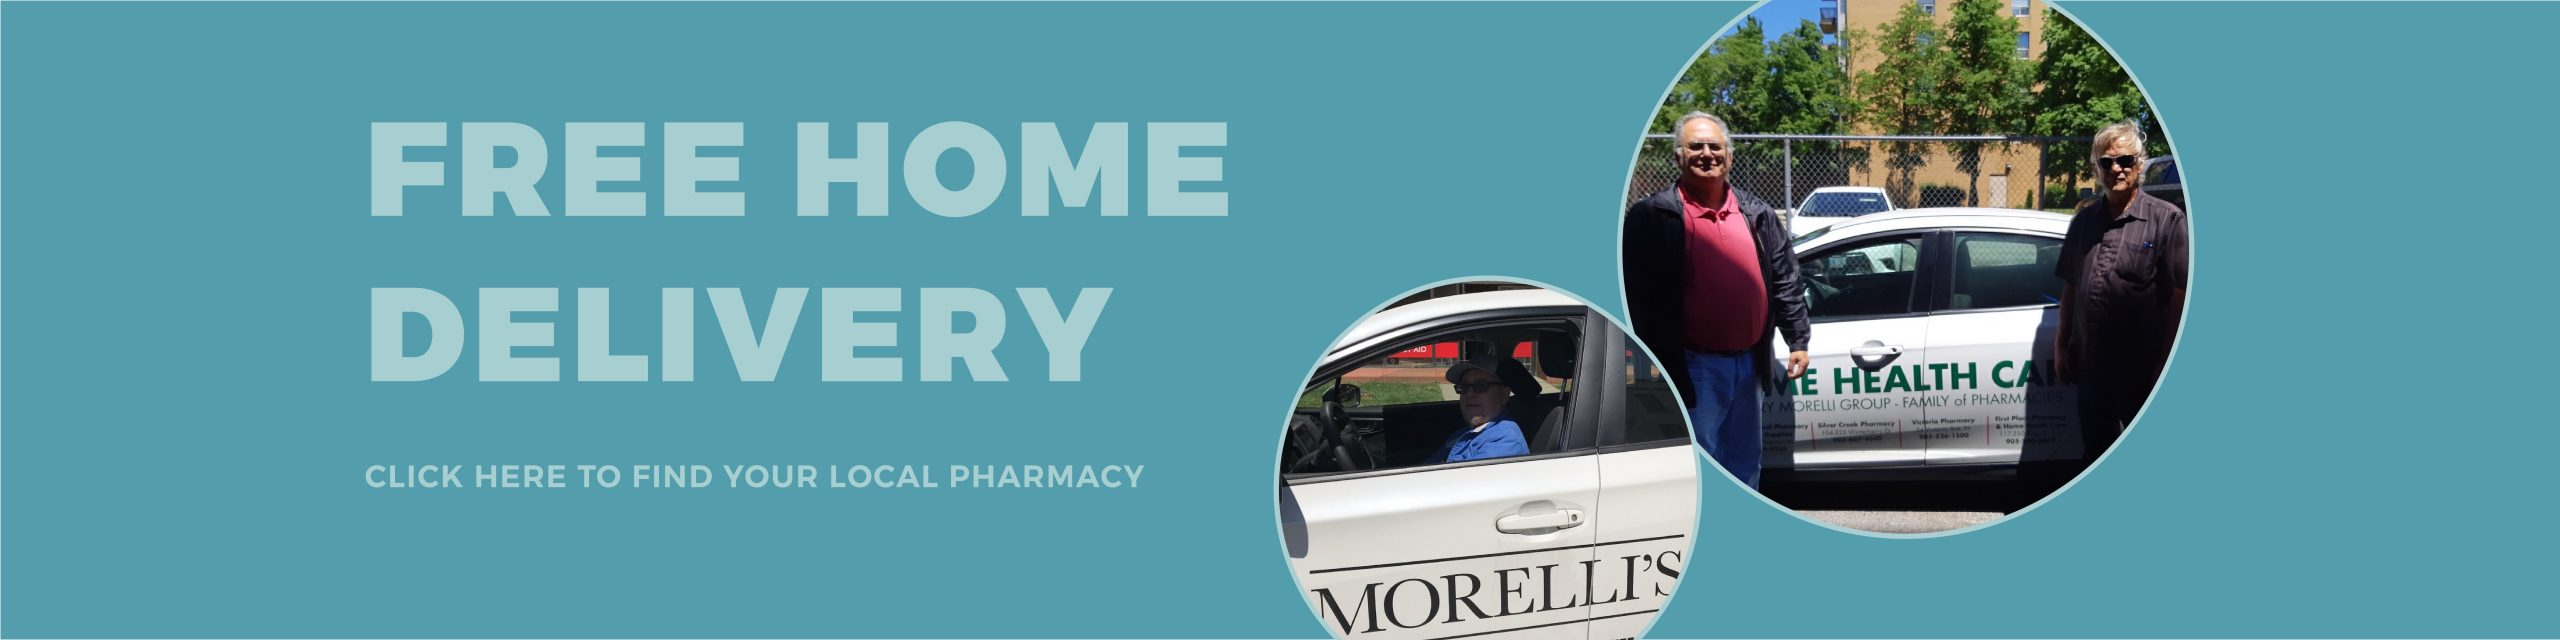 free home prescription delivery throughout the Greater Toronto Area.